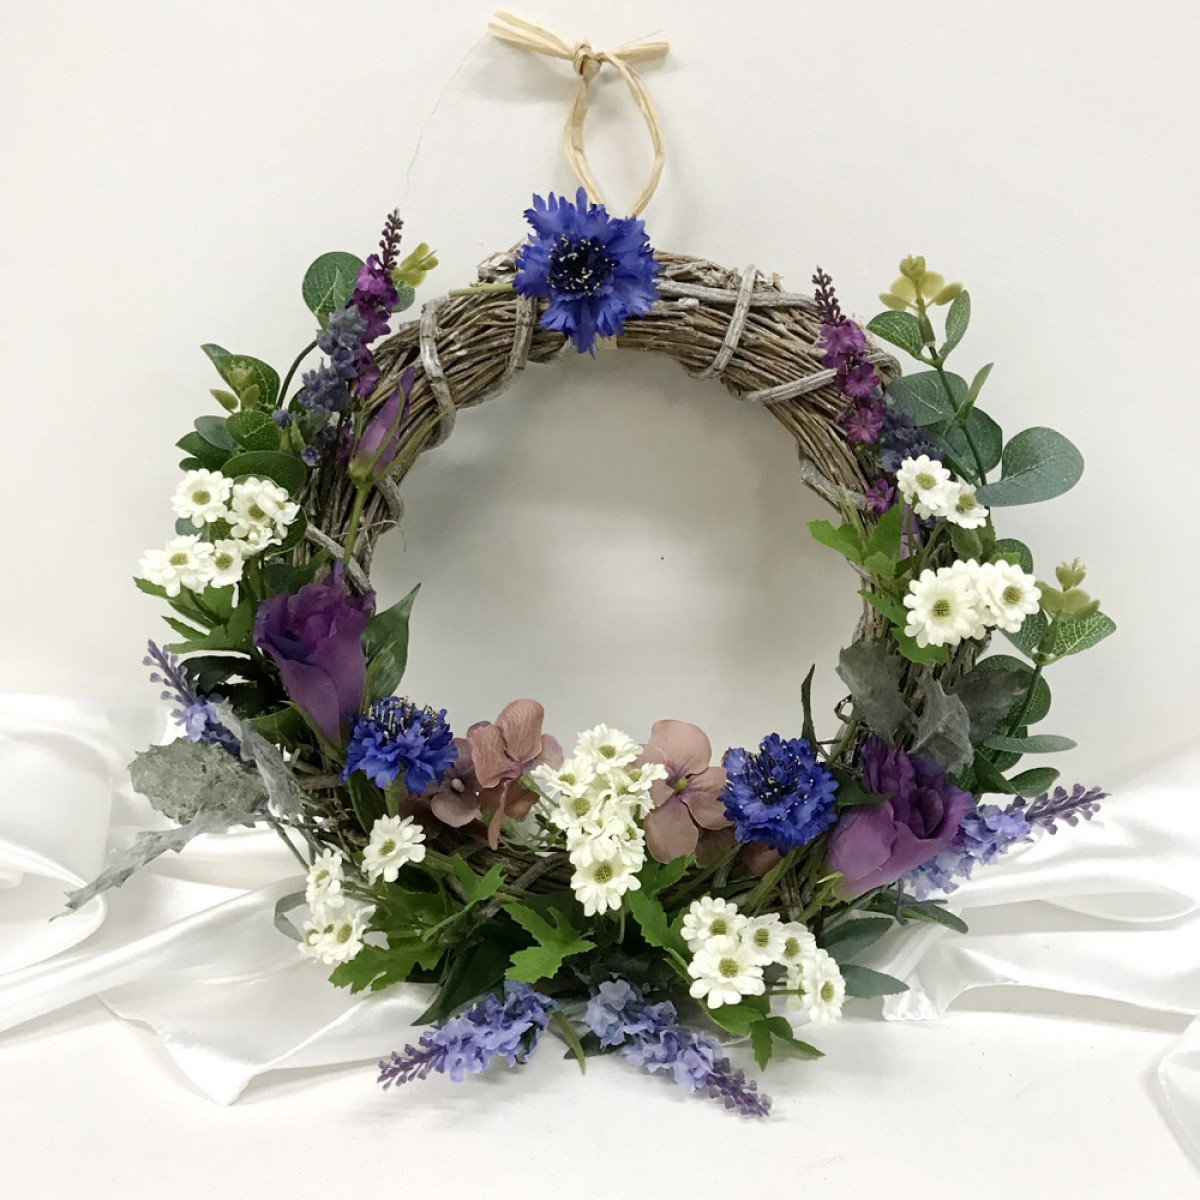 Cheap Wedding Flowers Sydney: Artificial Trees And Flowers Wholesale Melbourne